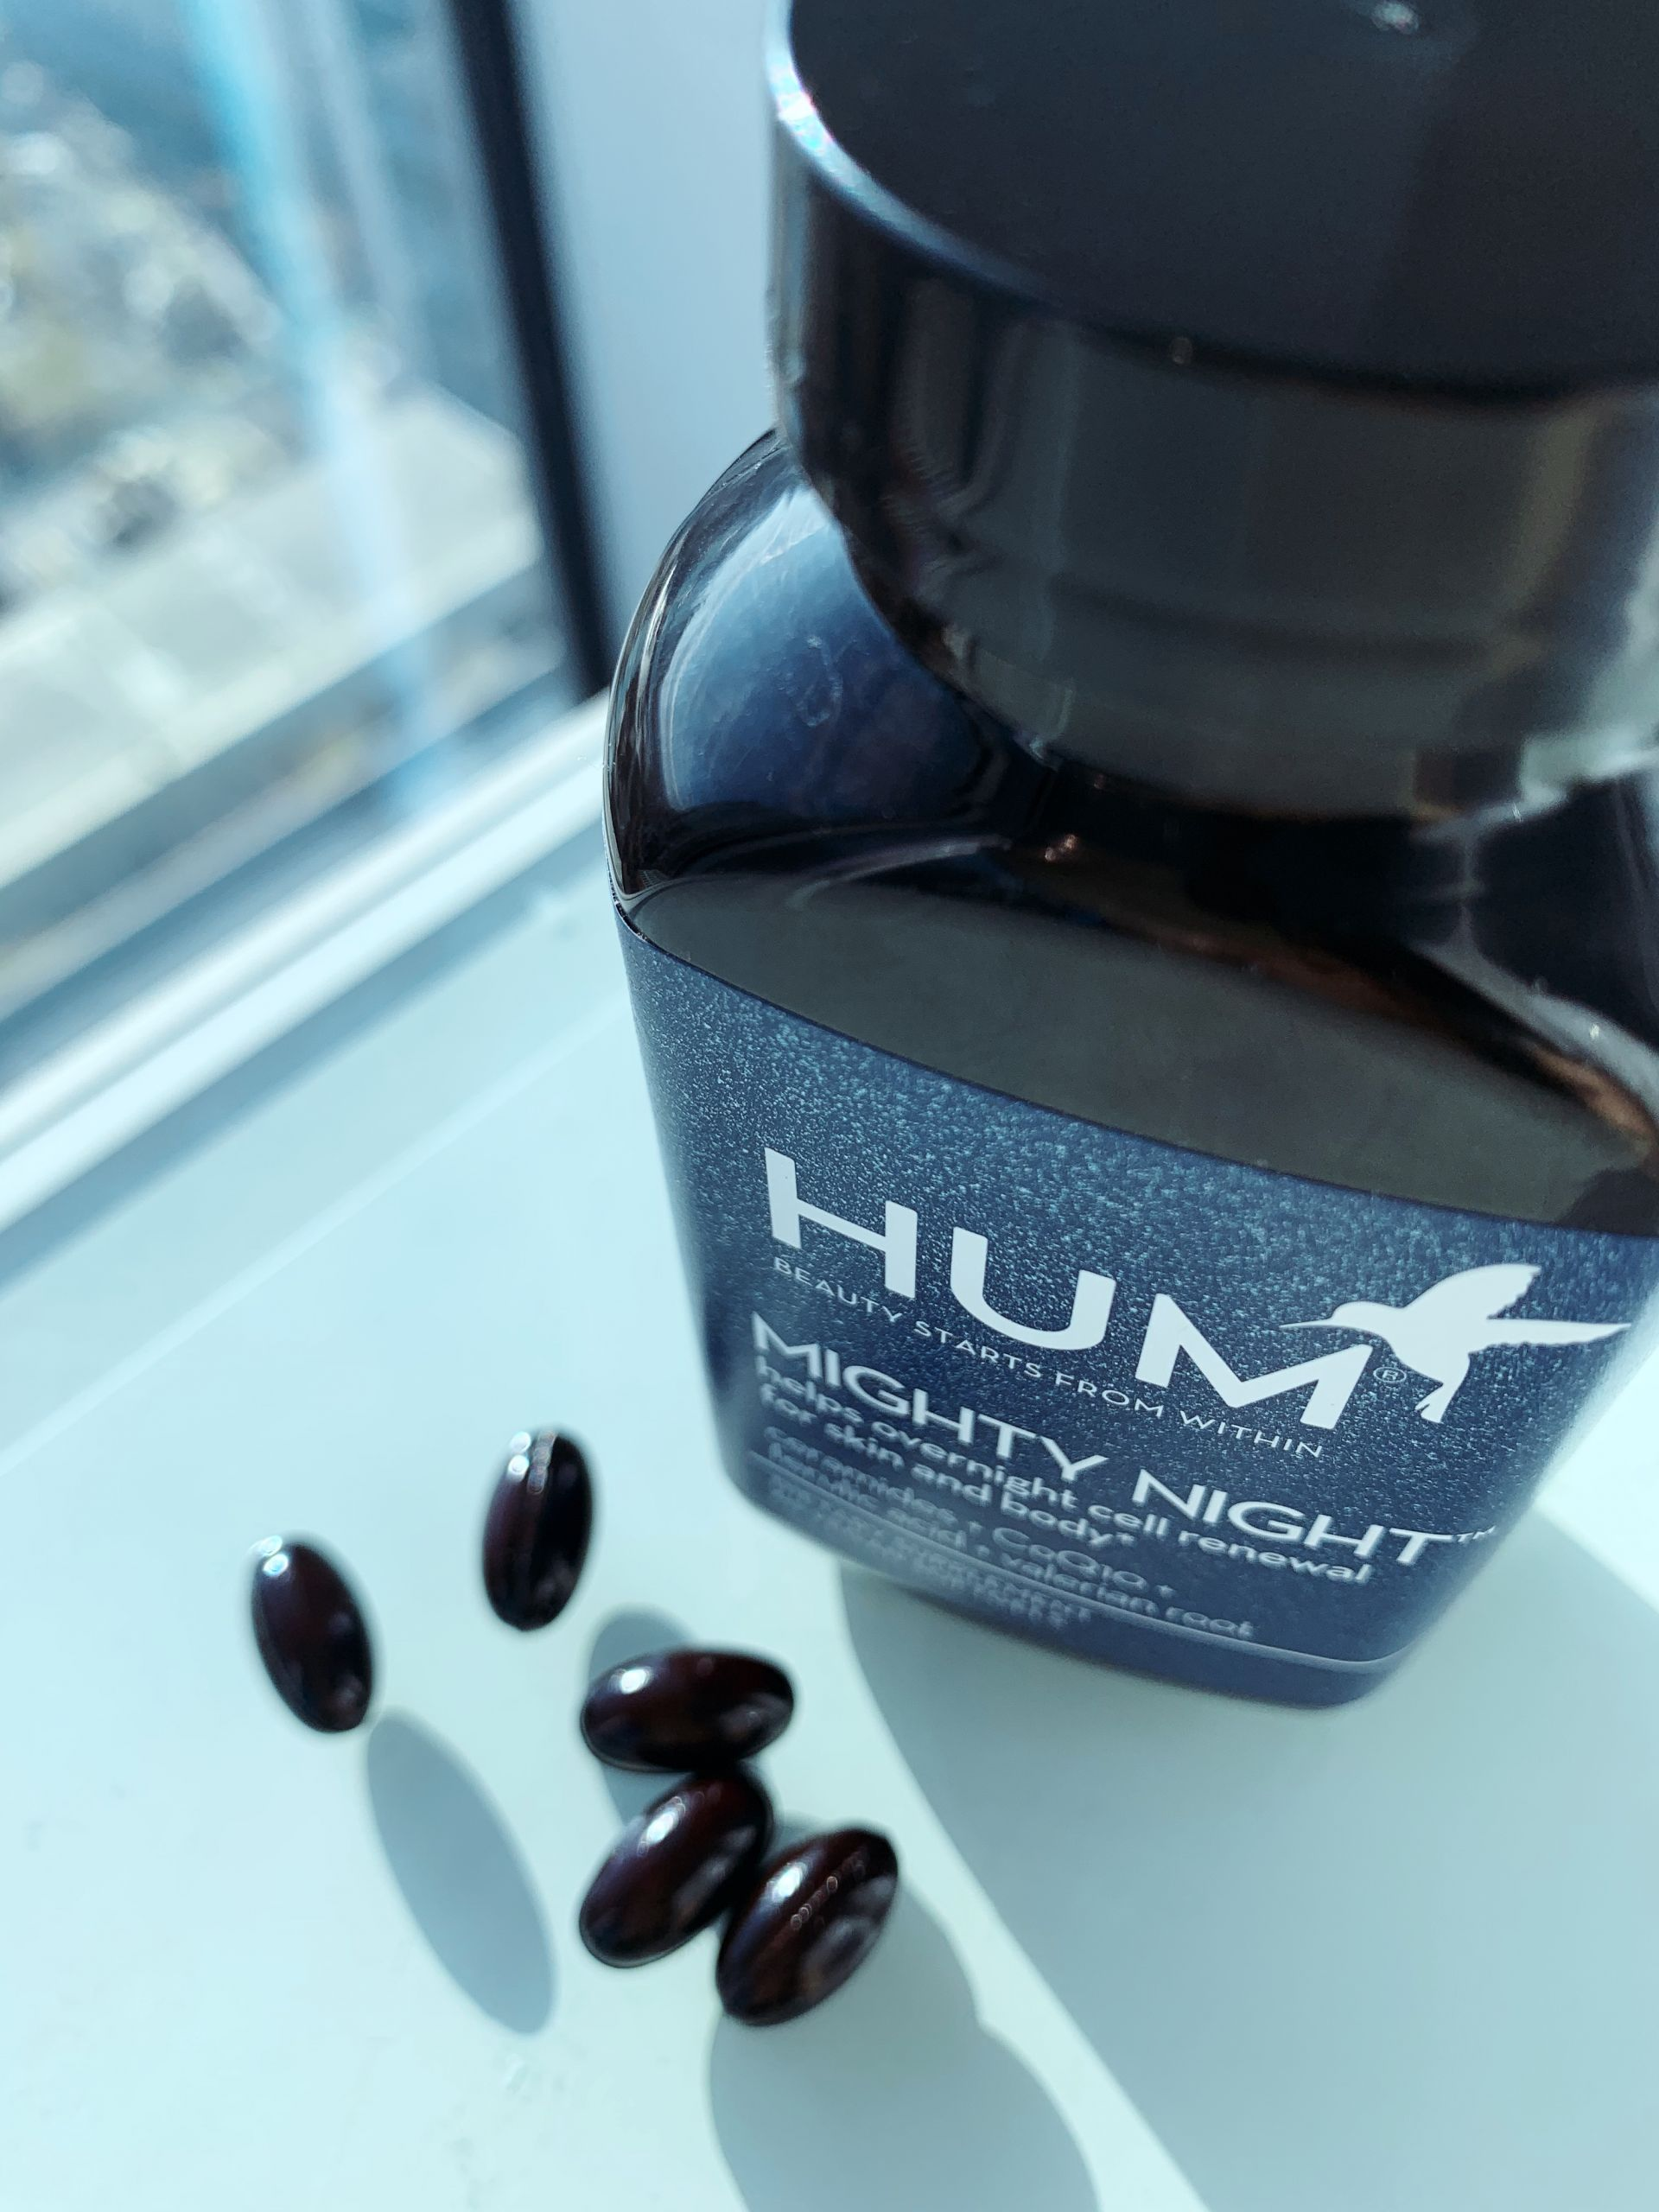 Hum Nutrition Might Night review